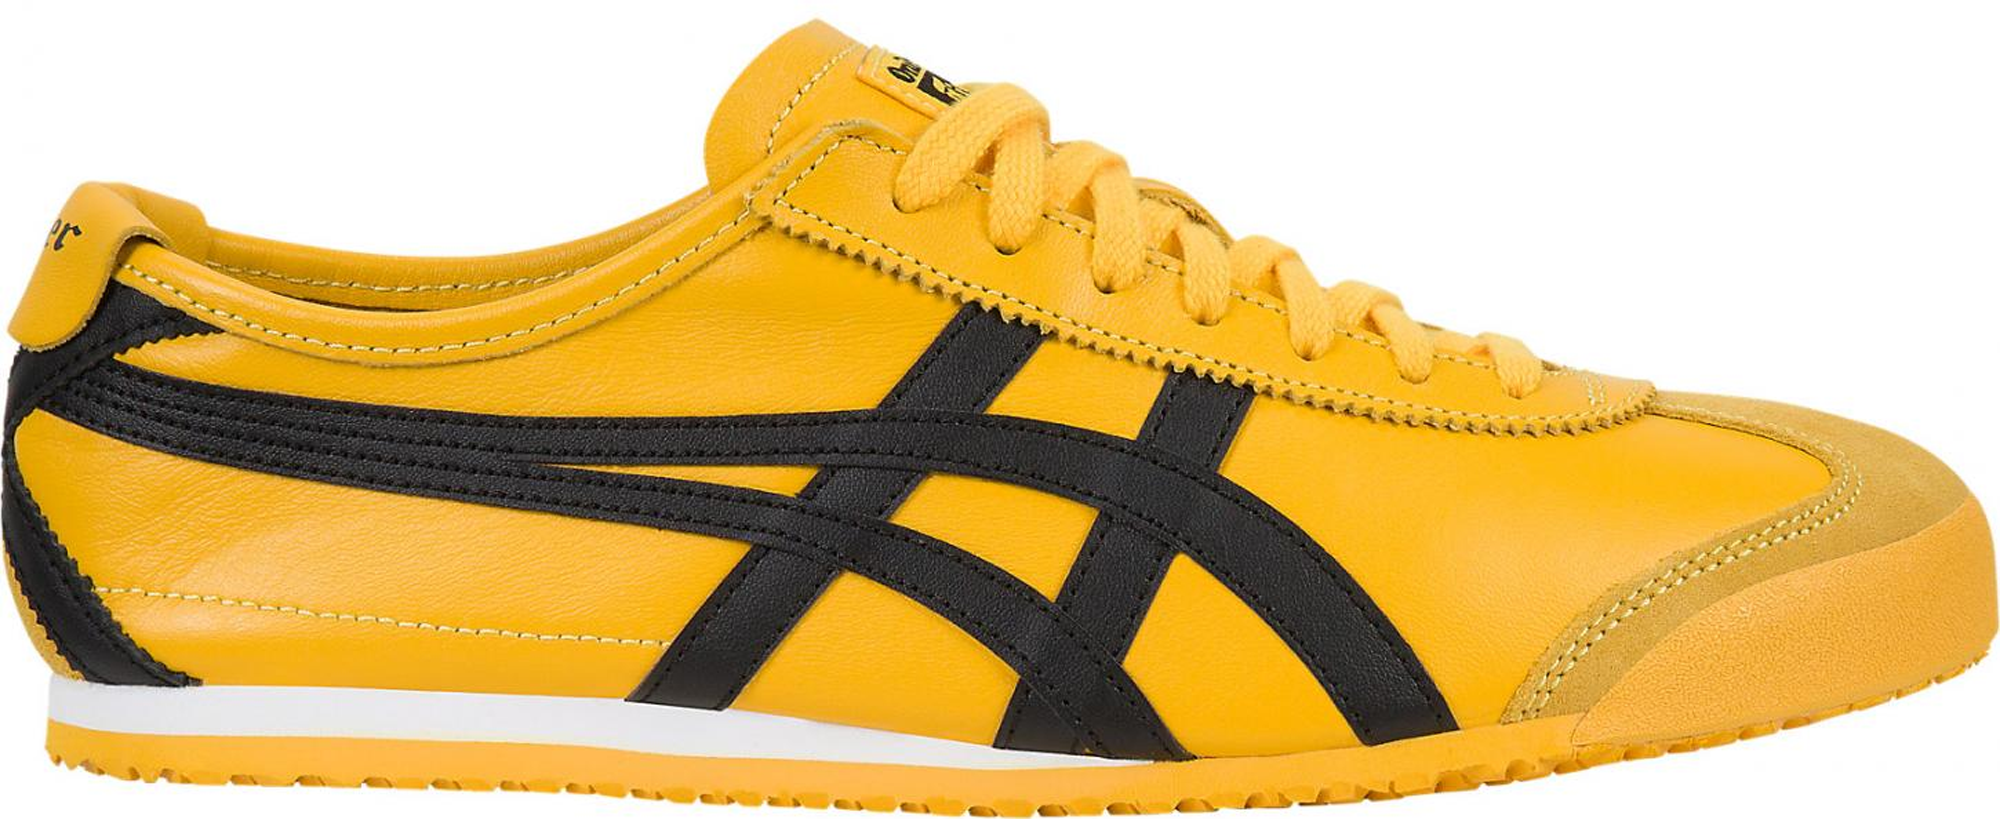 ae8f20f44abc3 Onitsuka tiger mexico kill bill png 1400x1000 Kill bill asics onitsuka